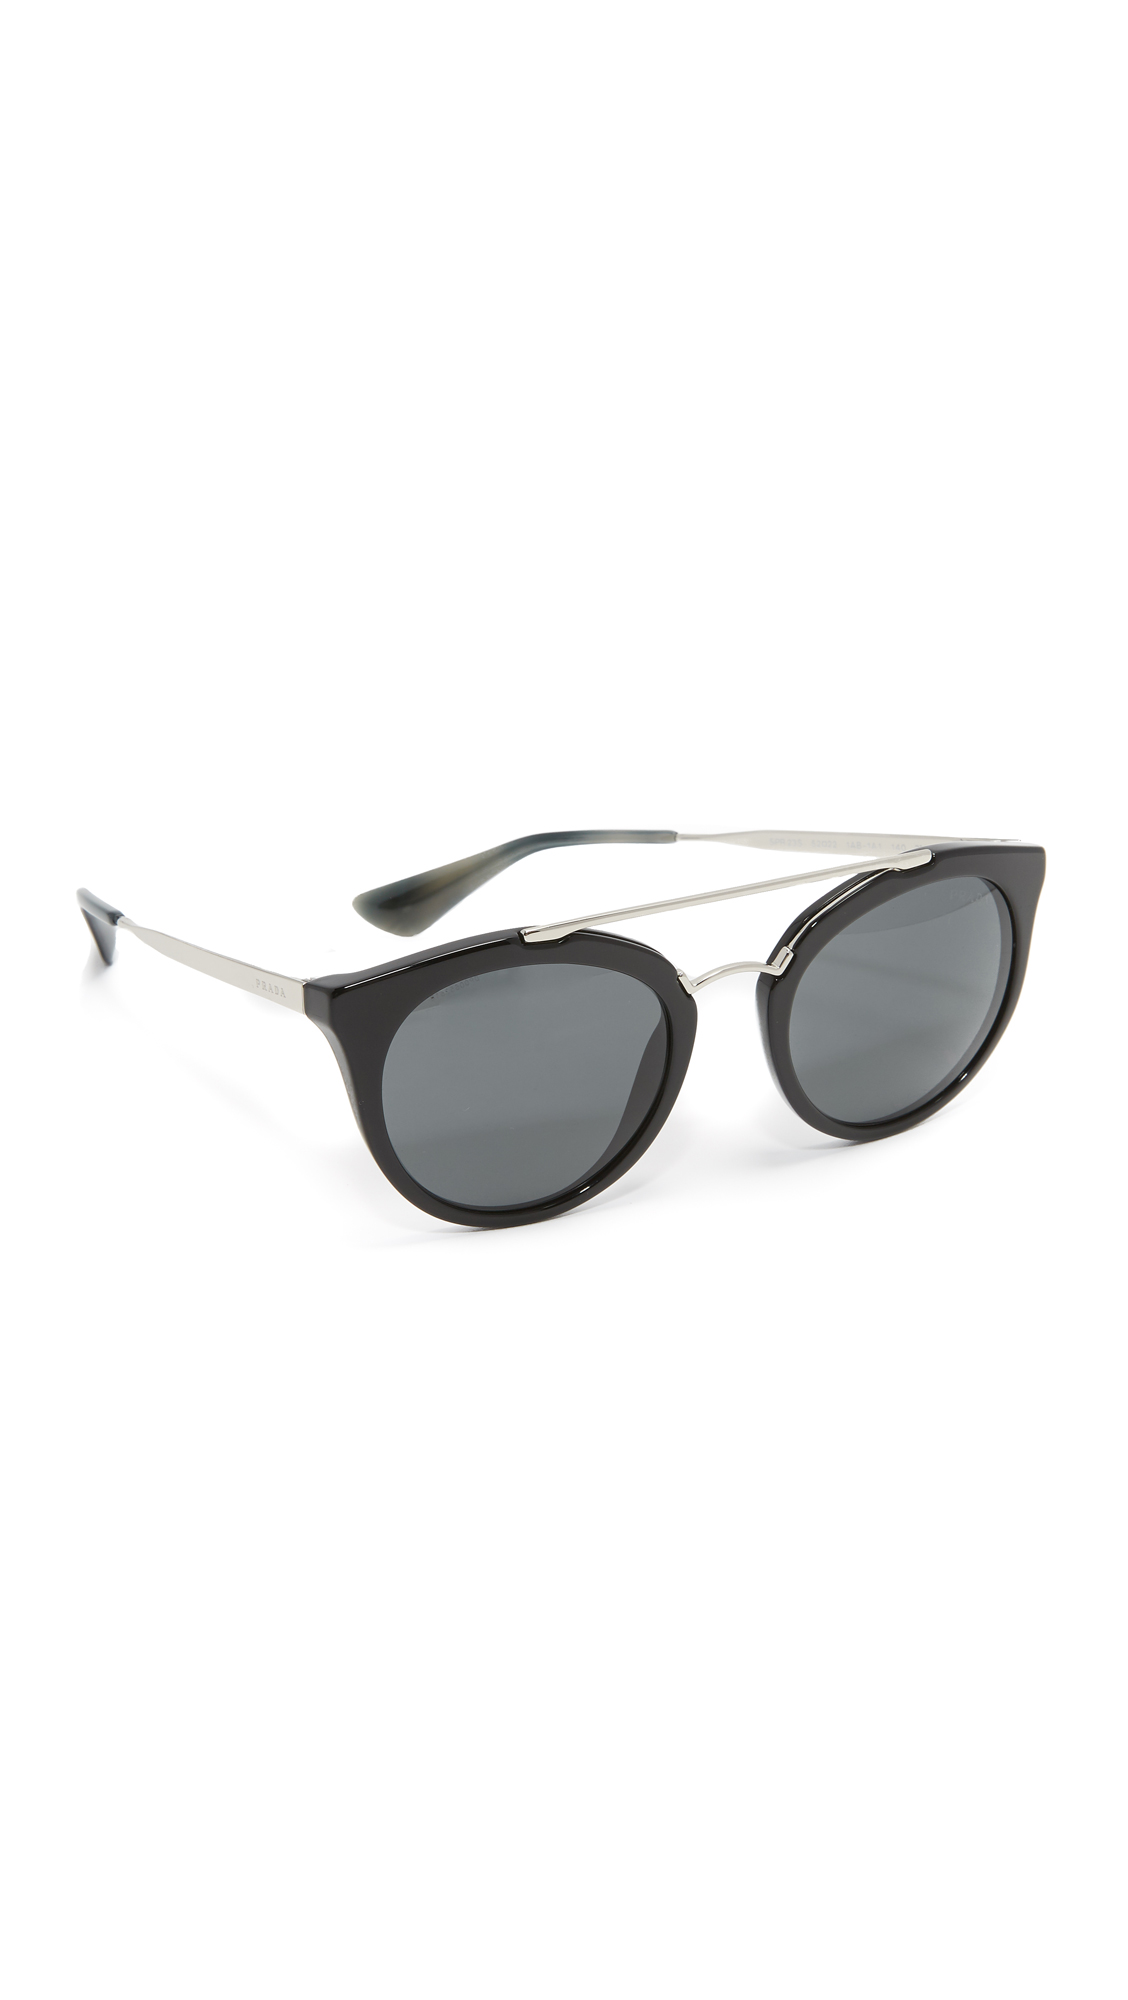 Prada Aviator Sunglasses - Black/Grey at Shopbop